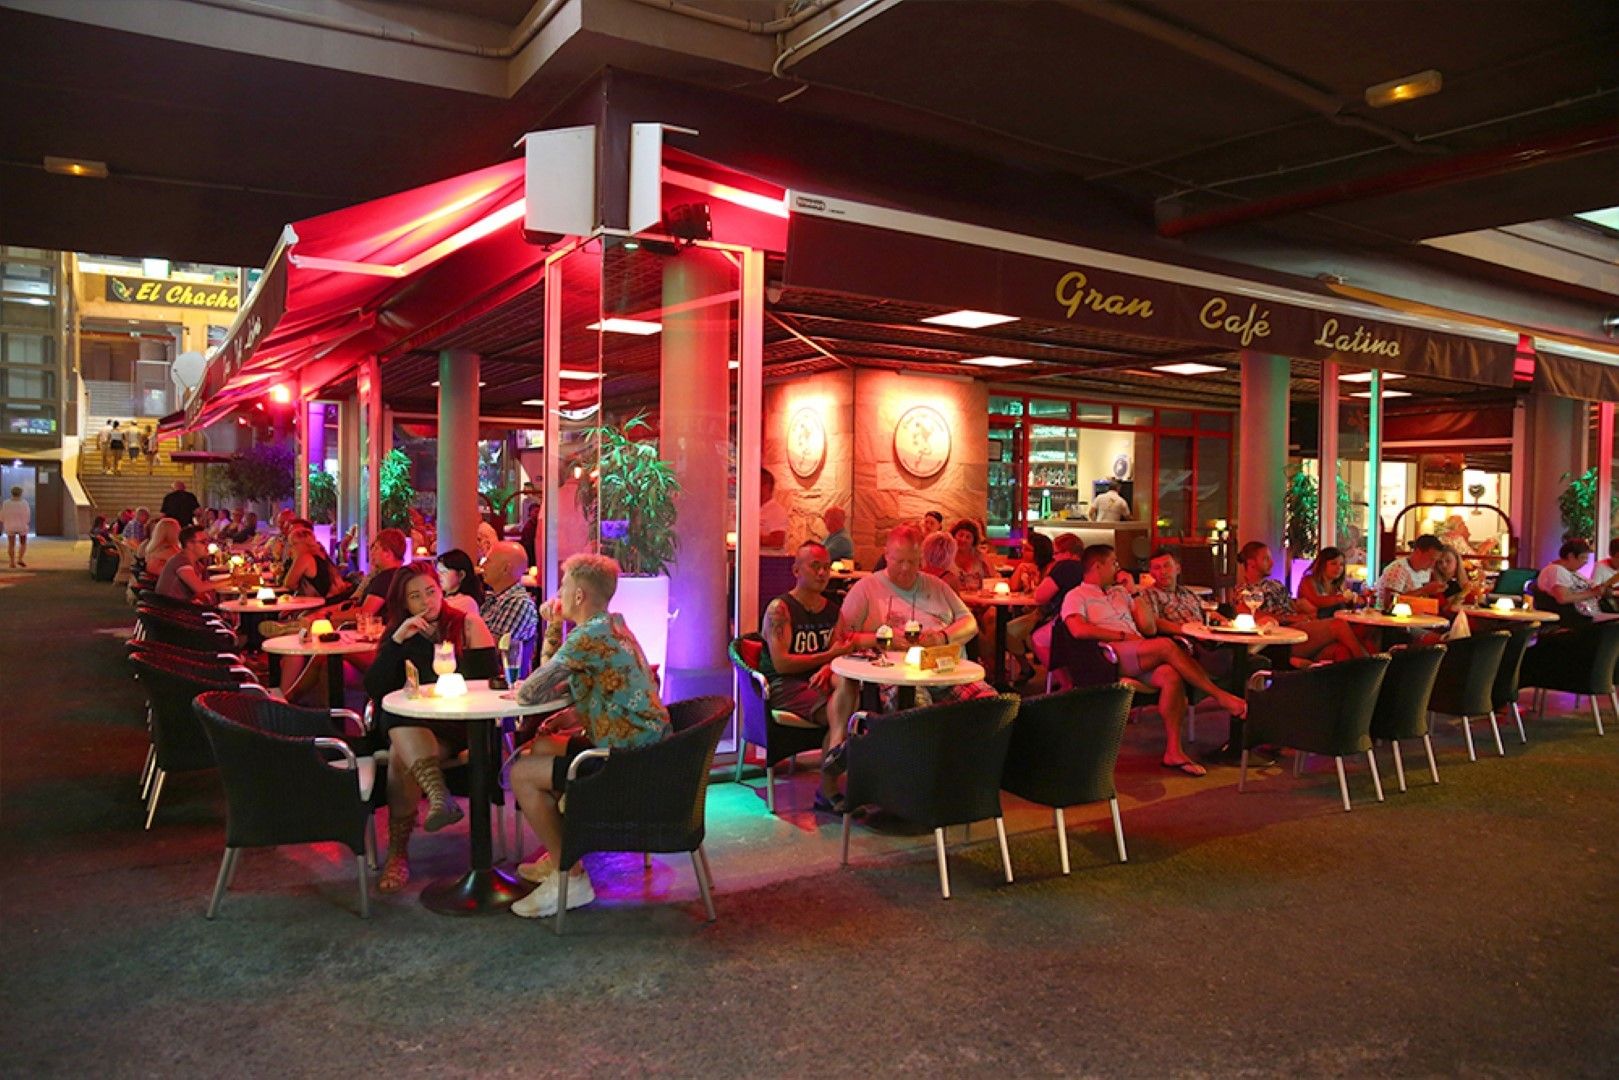 Gay Resort Hotel Club torso Gran Canaria Yumbo Grand cafe